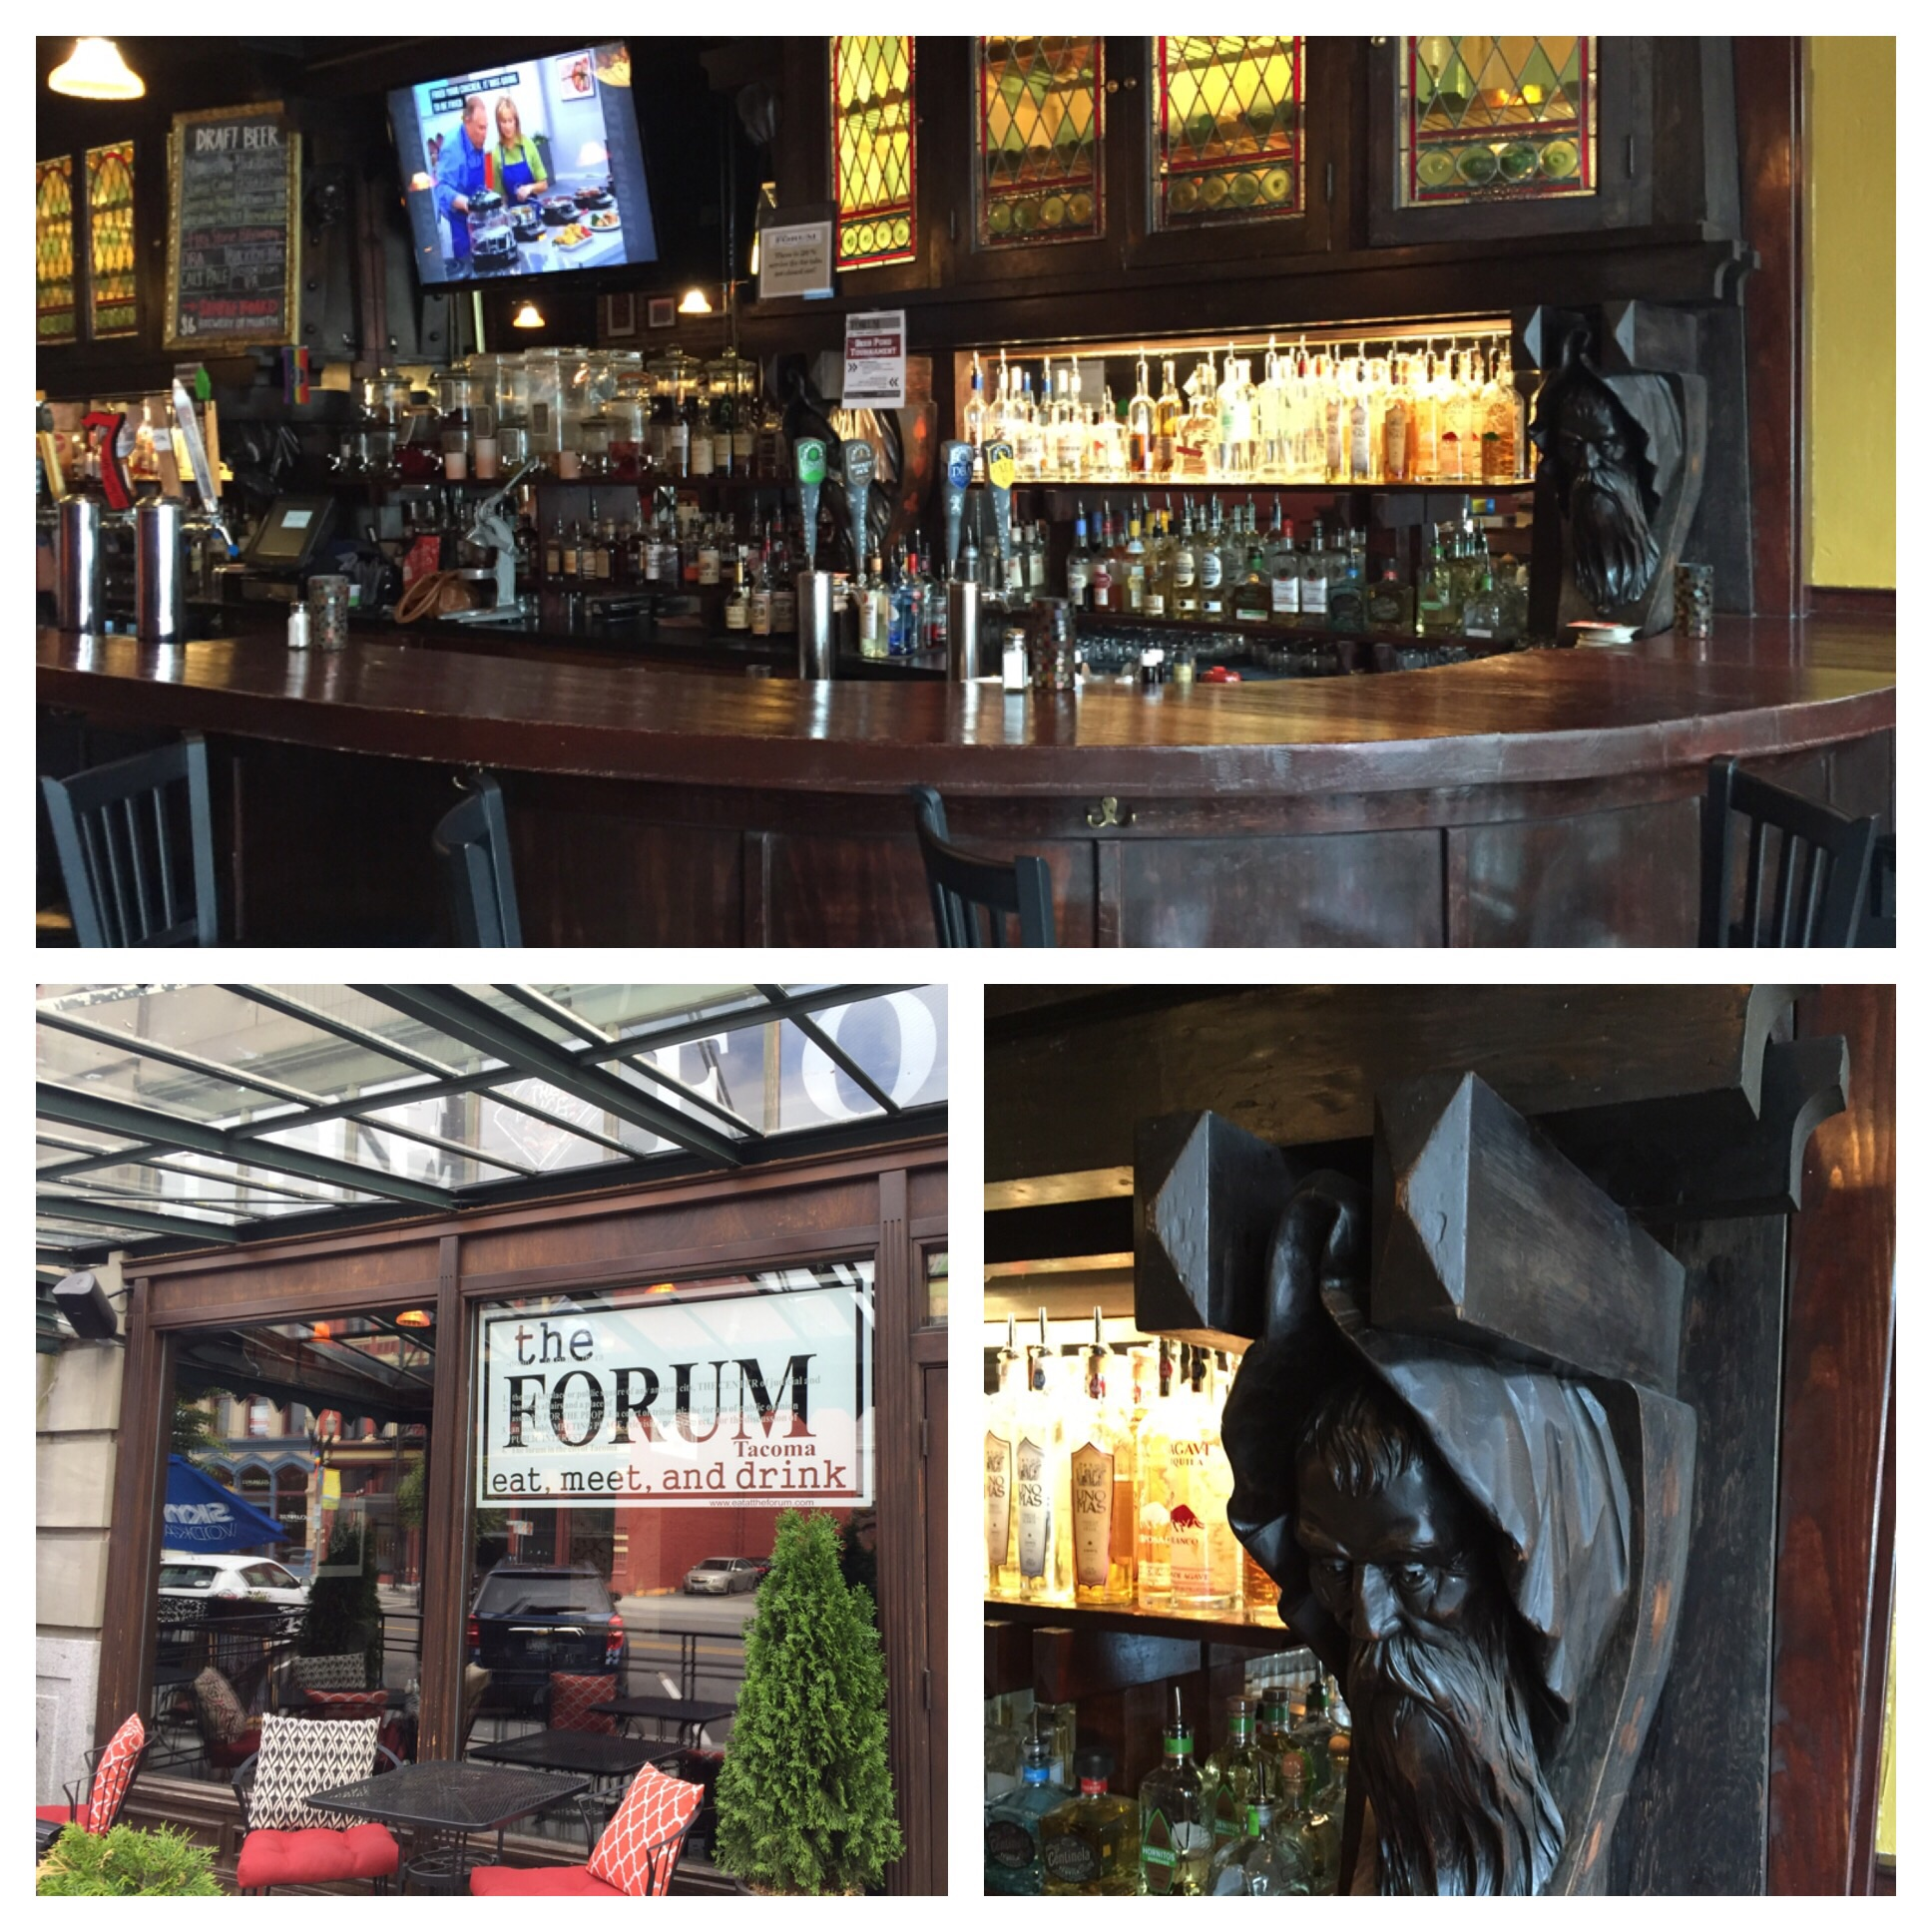 The bar and stained glass were made in France in the late 1800's and shipped over to Tacoma.